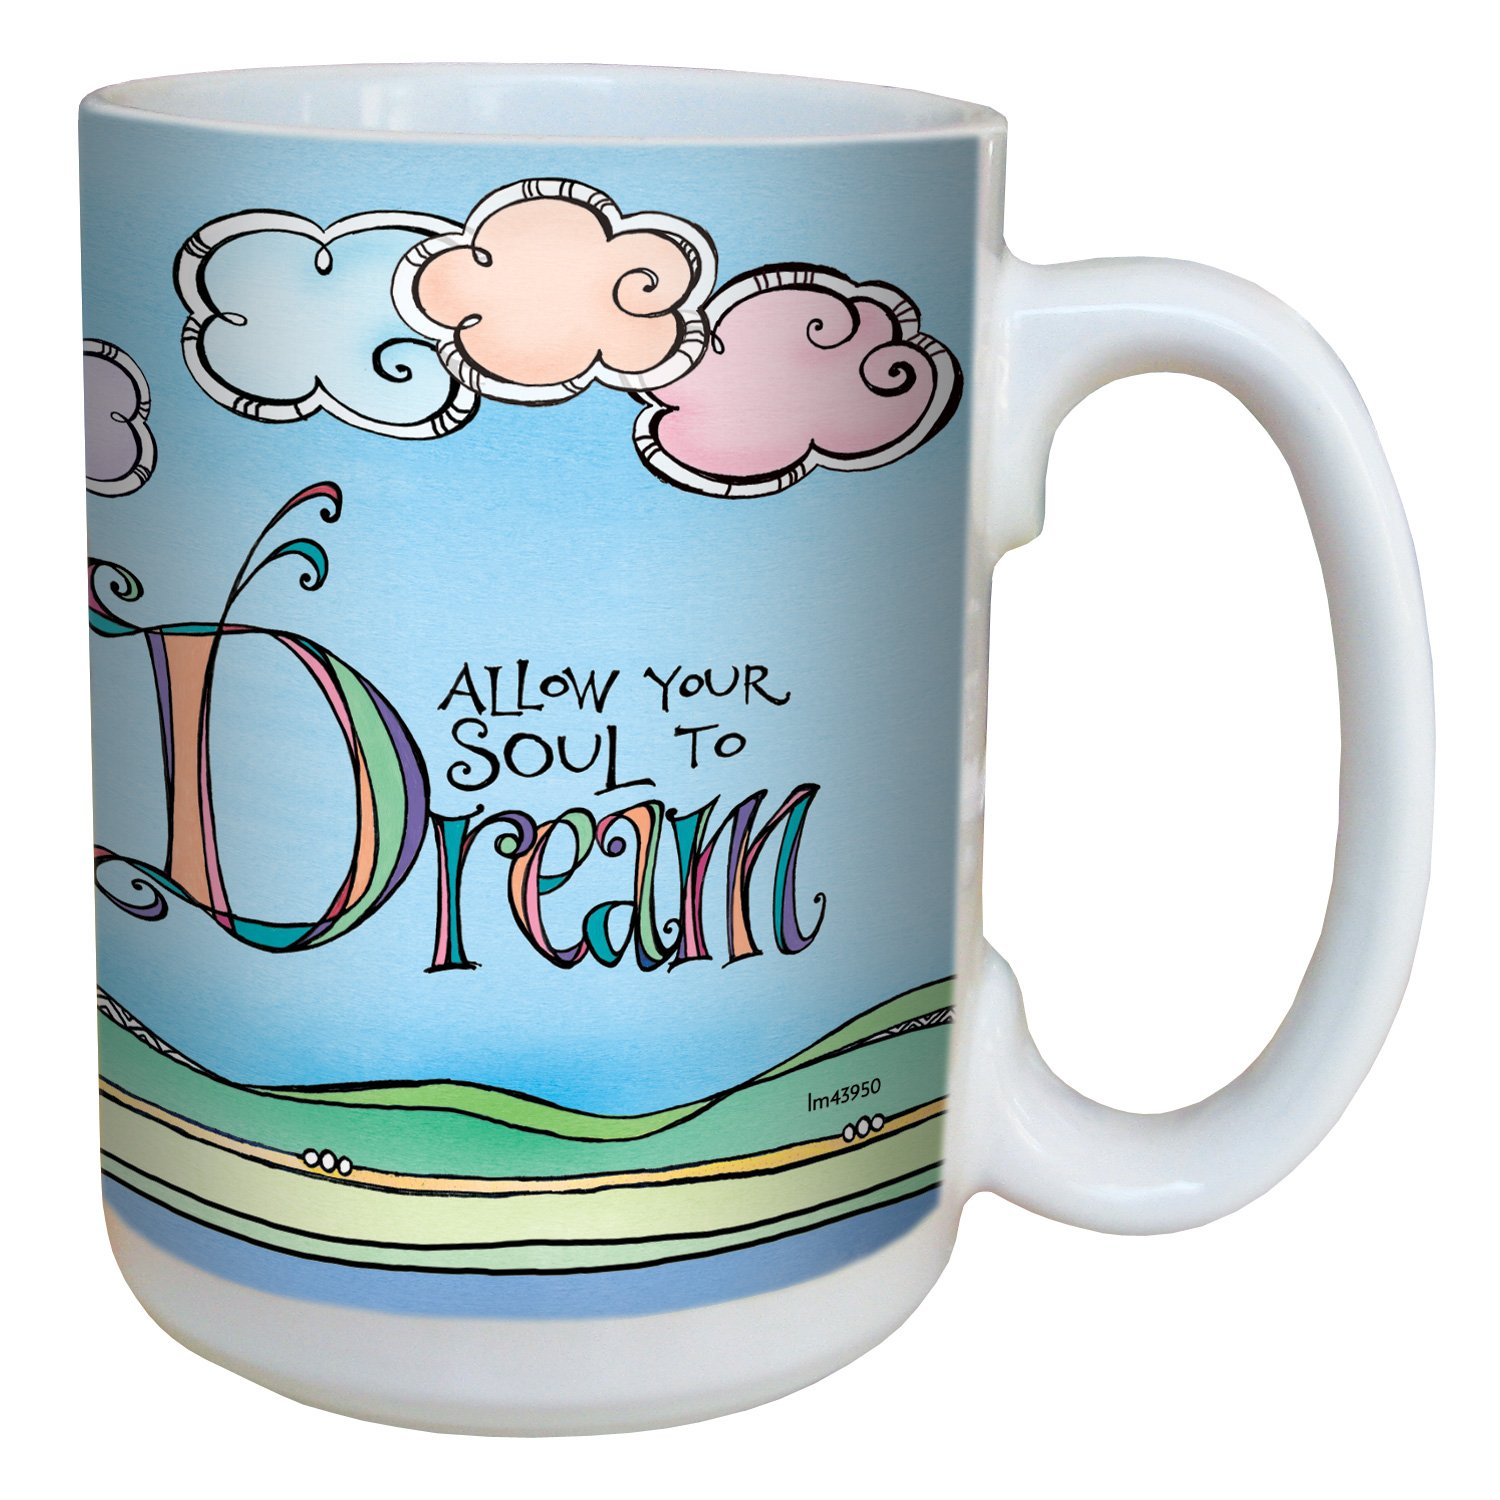 Tree-Free Greetings lm43950 Allow Your Soul by Joanne Fink Ceramic Mug with Full-Sized Handle 15-Ounce